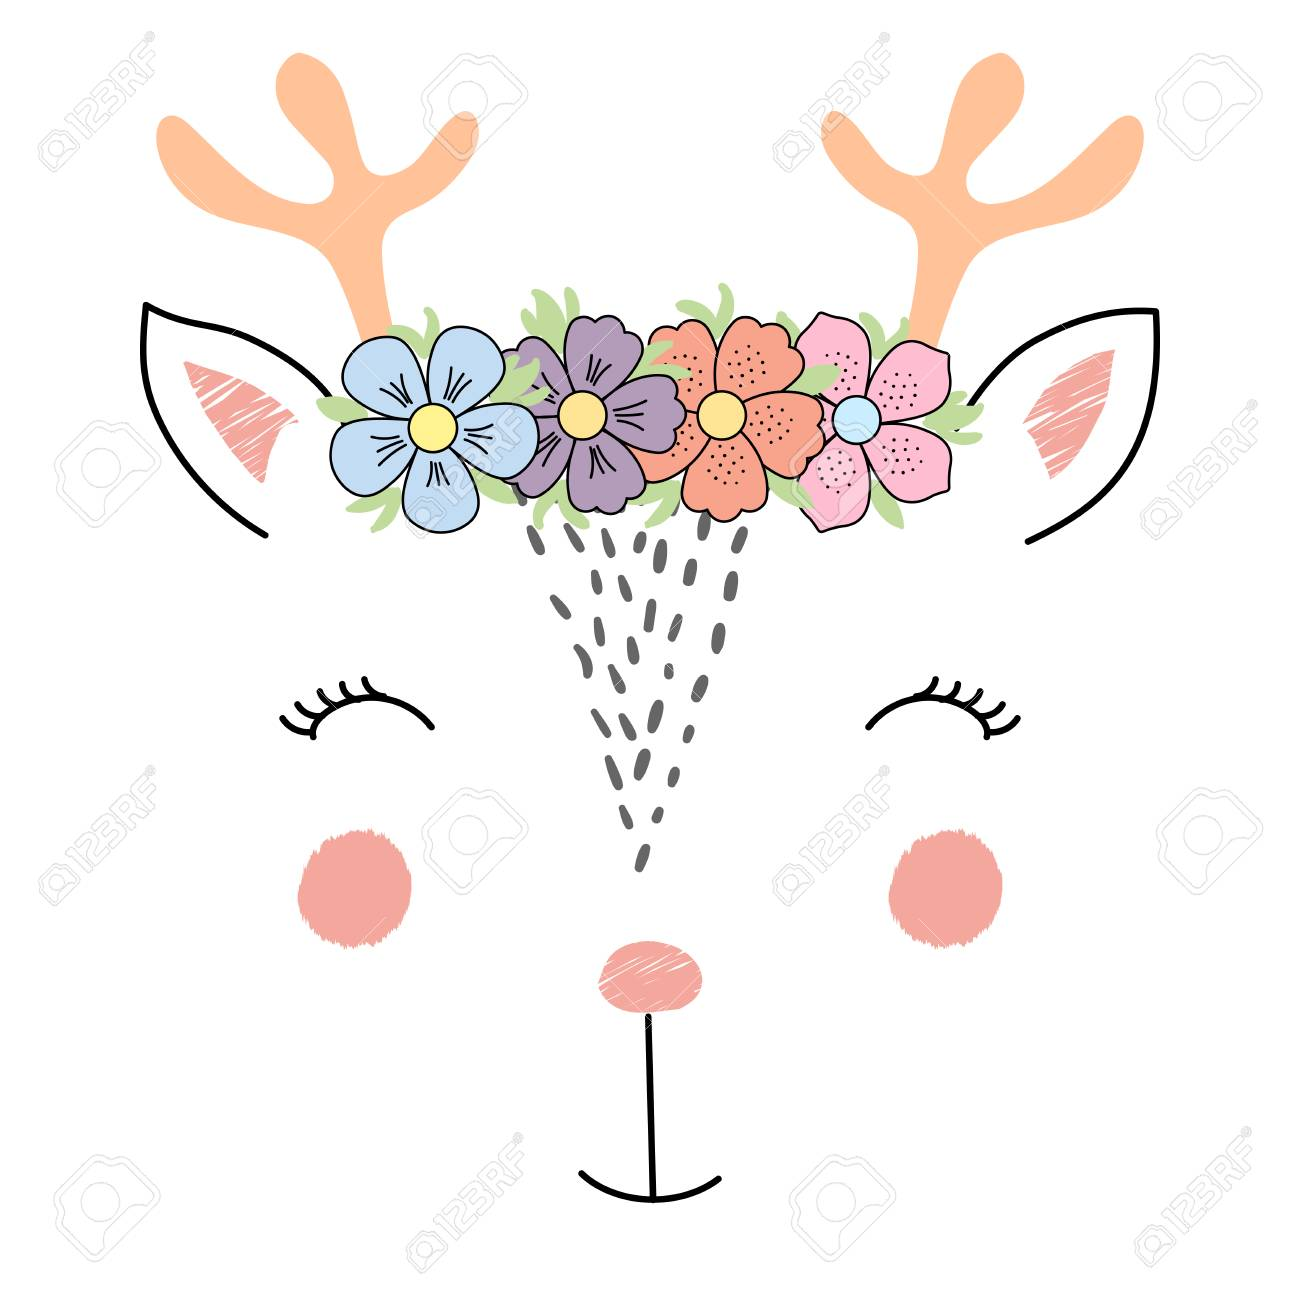 fcd736073c9 Hand drawn vector illustration of a funny reindeer girl face in a flower  chain. Isolated